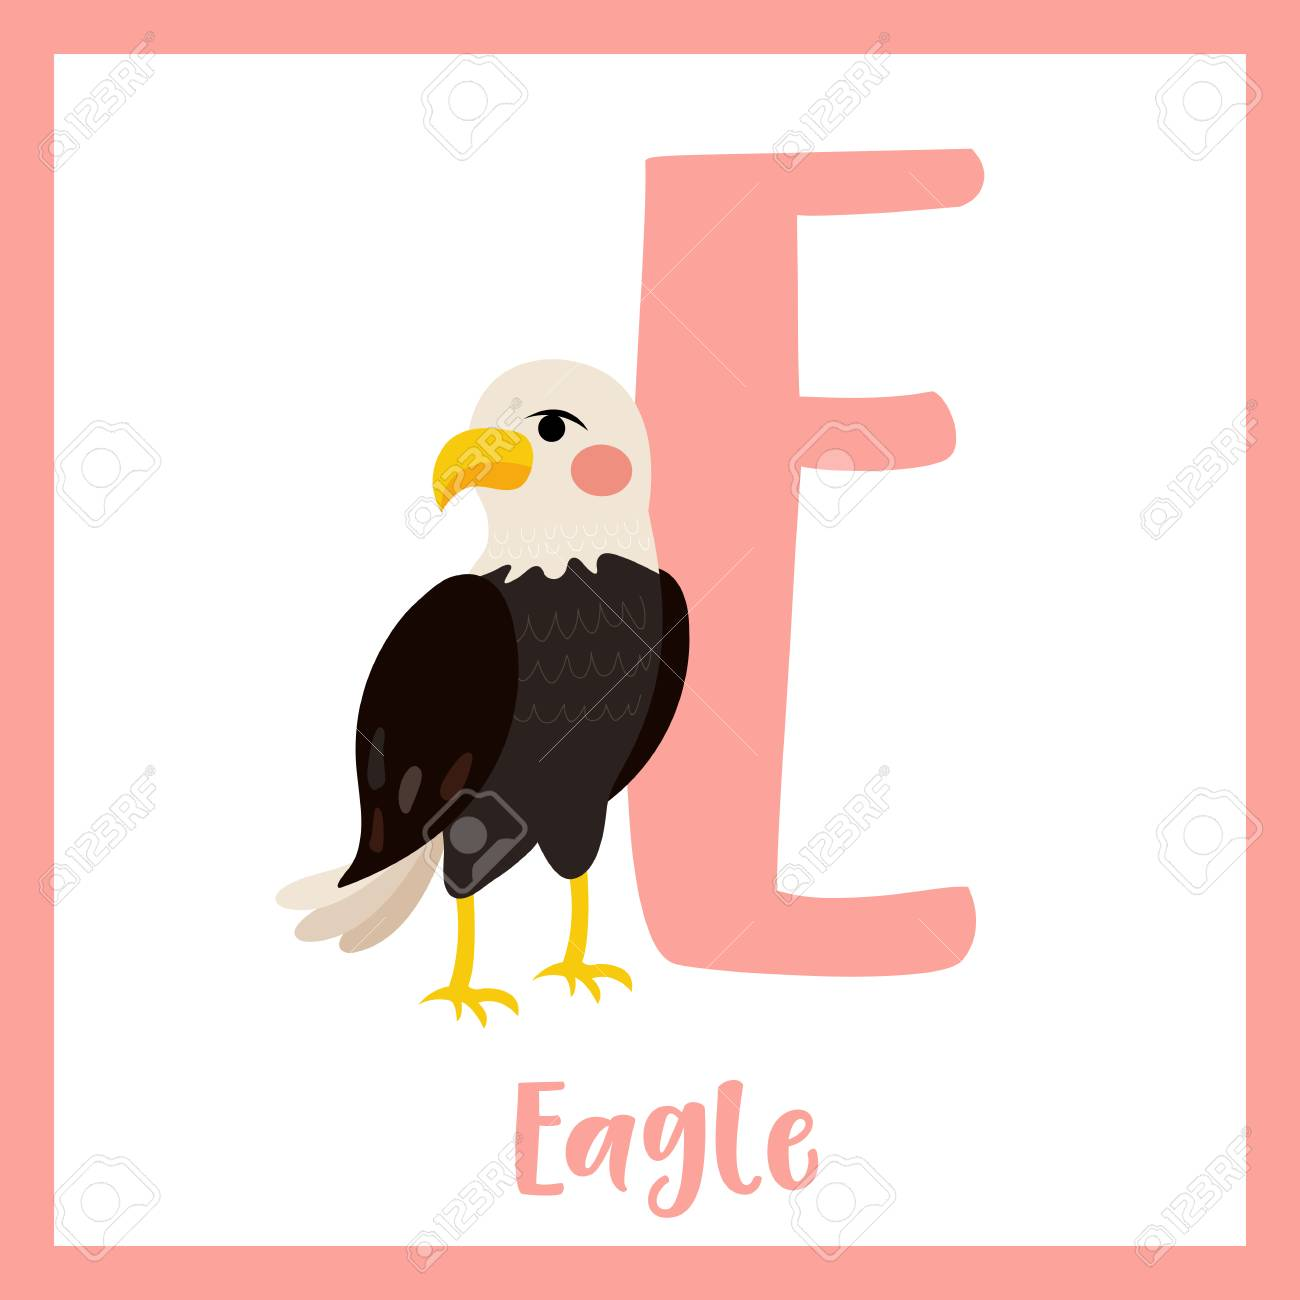 Standing Eagle. Cute Children ABC Zoo Alphabet Flash Card. Funny